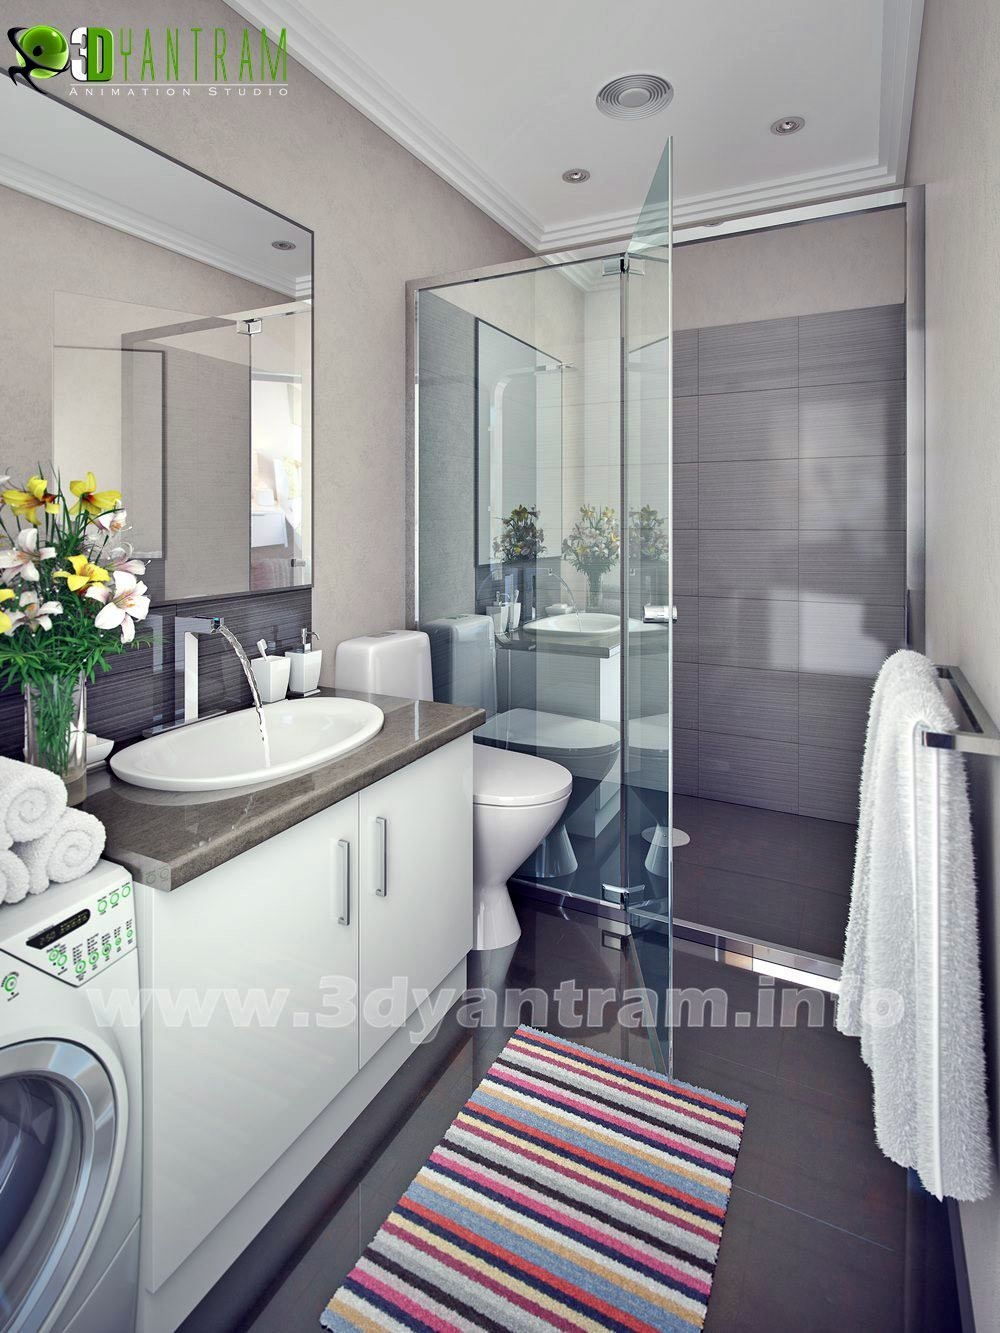 Visualize Your Modern Bathroom Design With Yantram  Yantram Architectural Design Studio